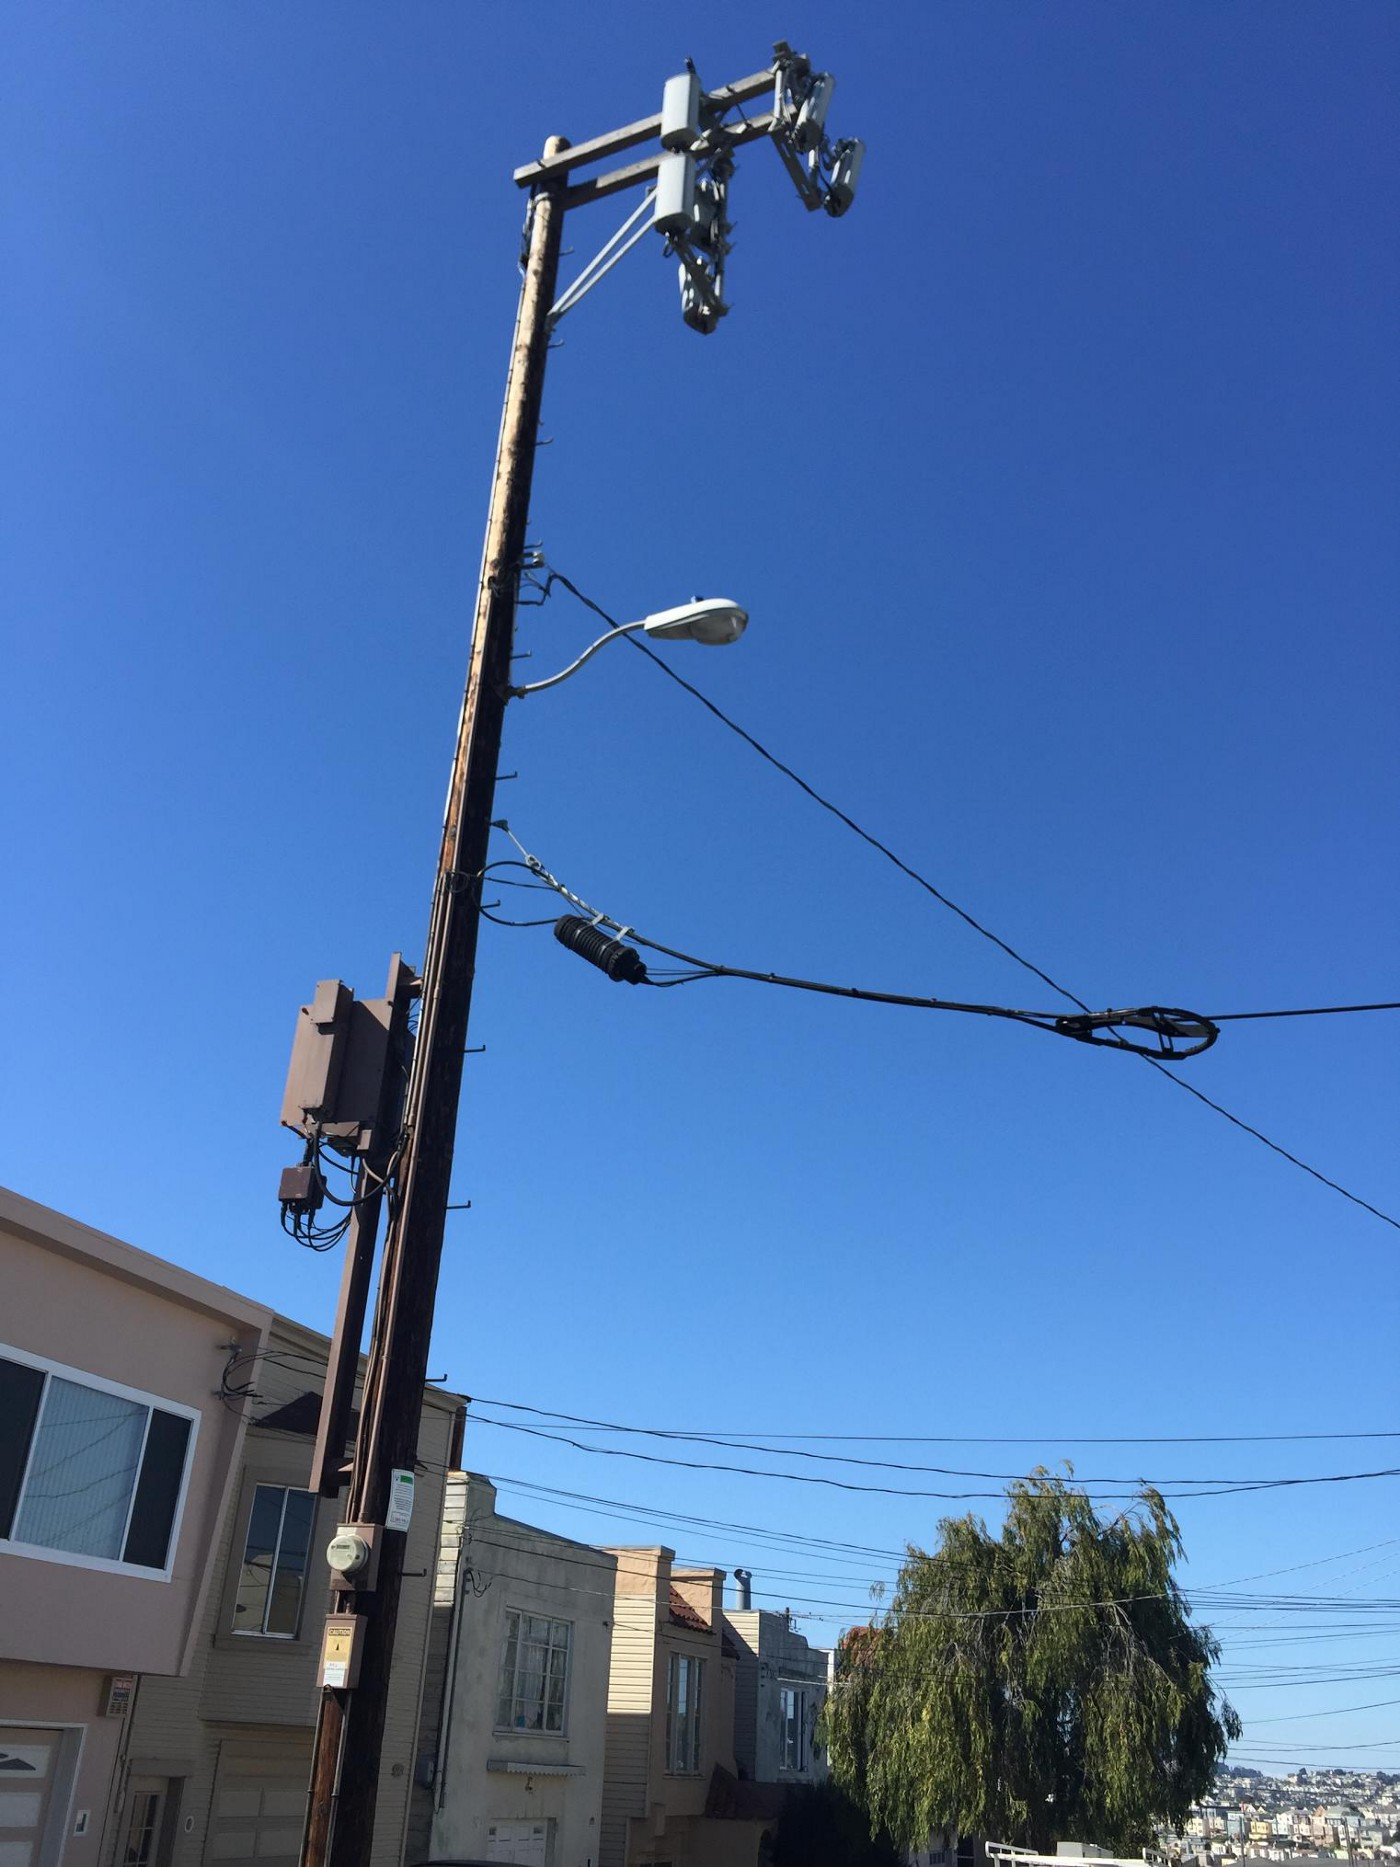 Part 4 | Design Tips for Small Cells Based on Pole or Location Type